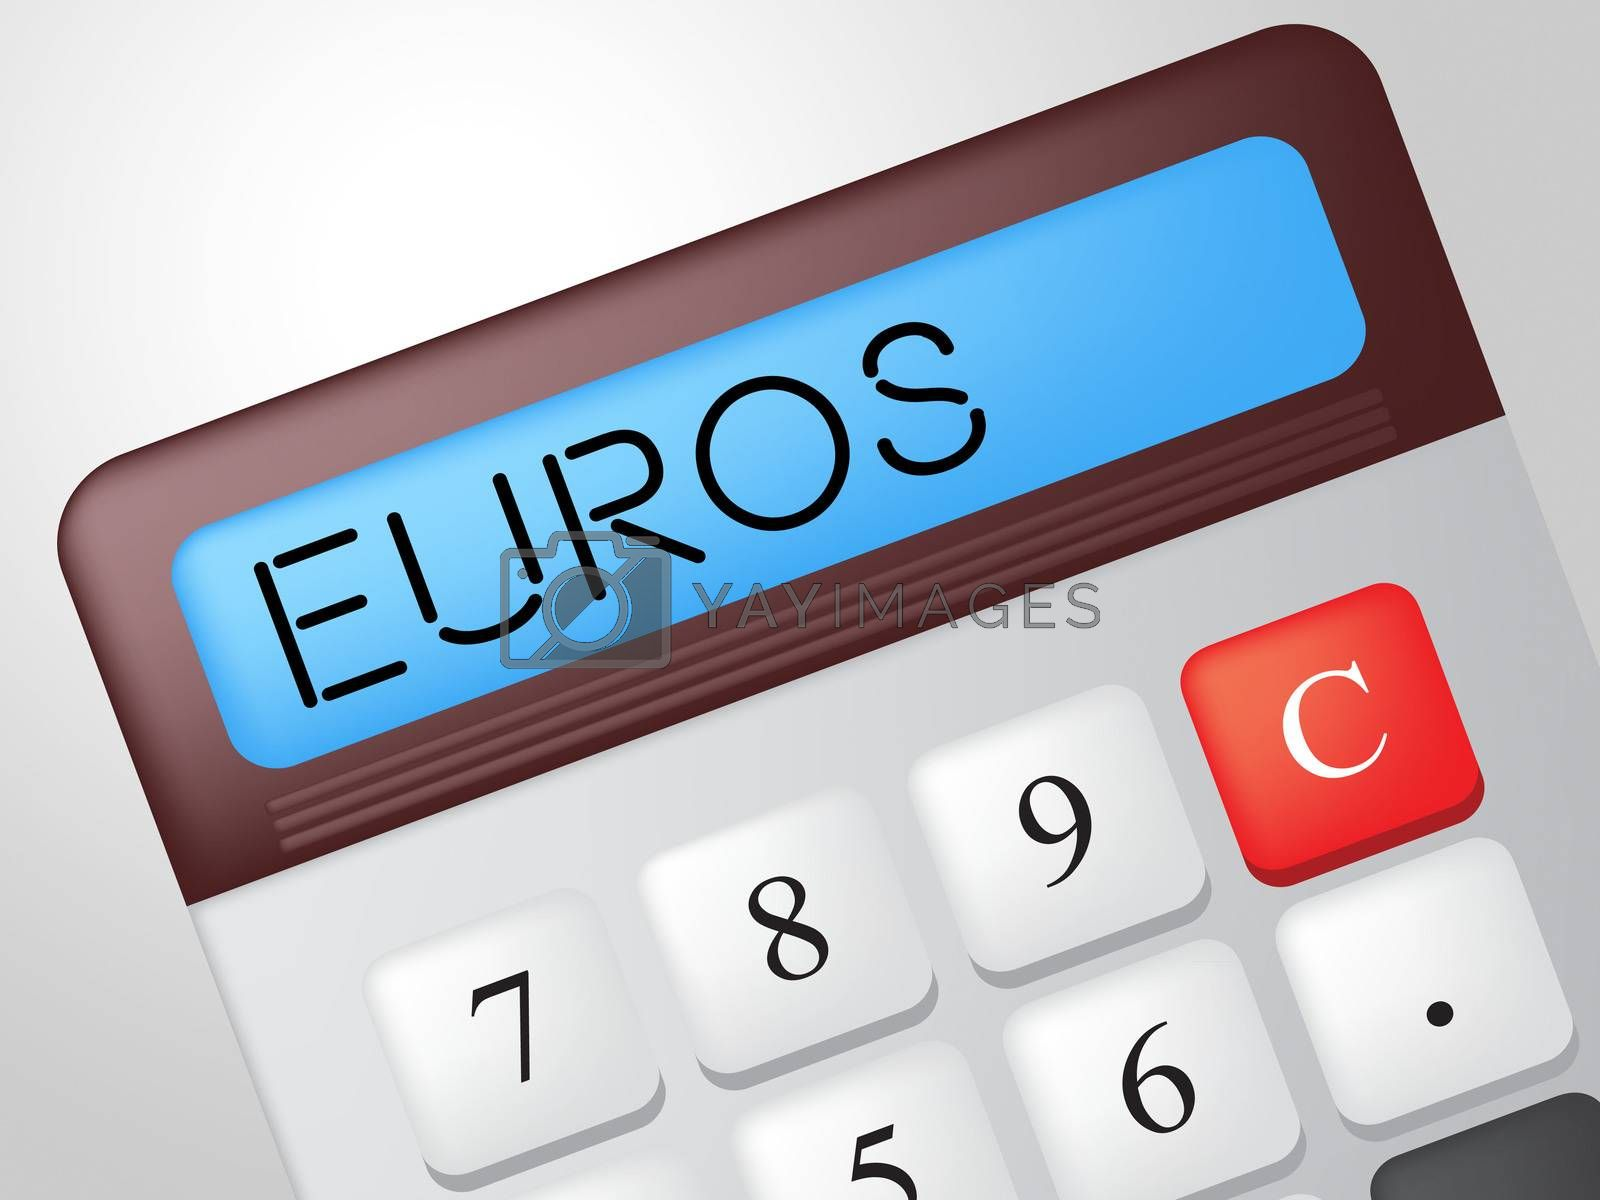 Euros Calculator Represents Investment Cash And Money by stuartmiles